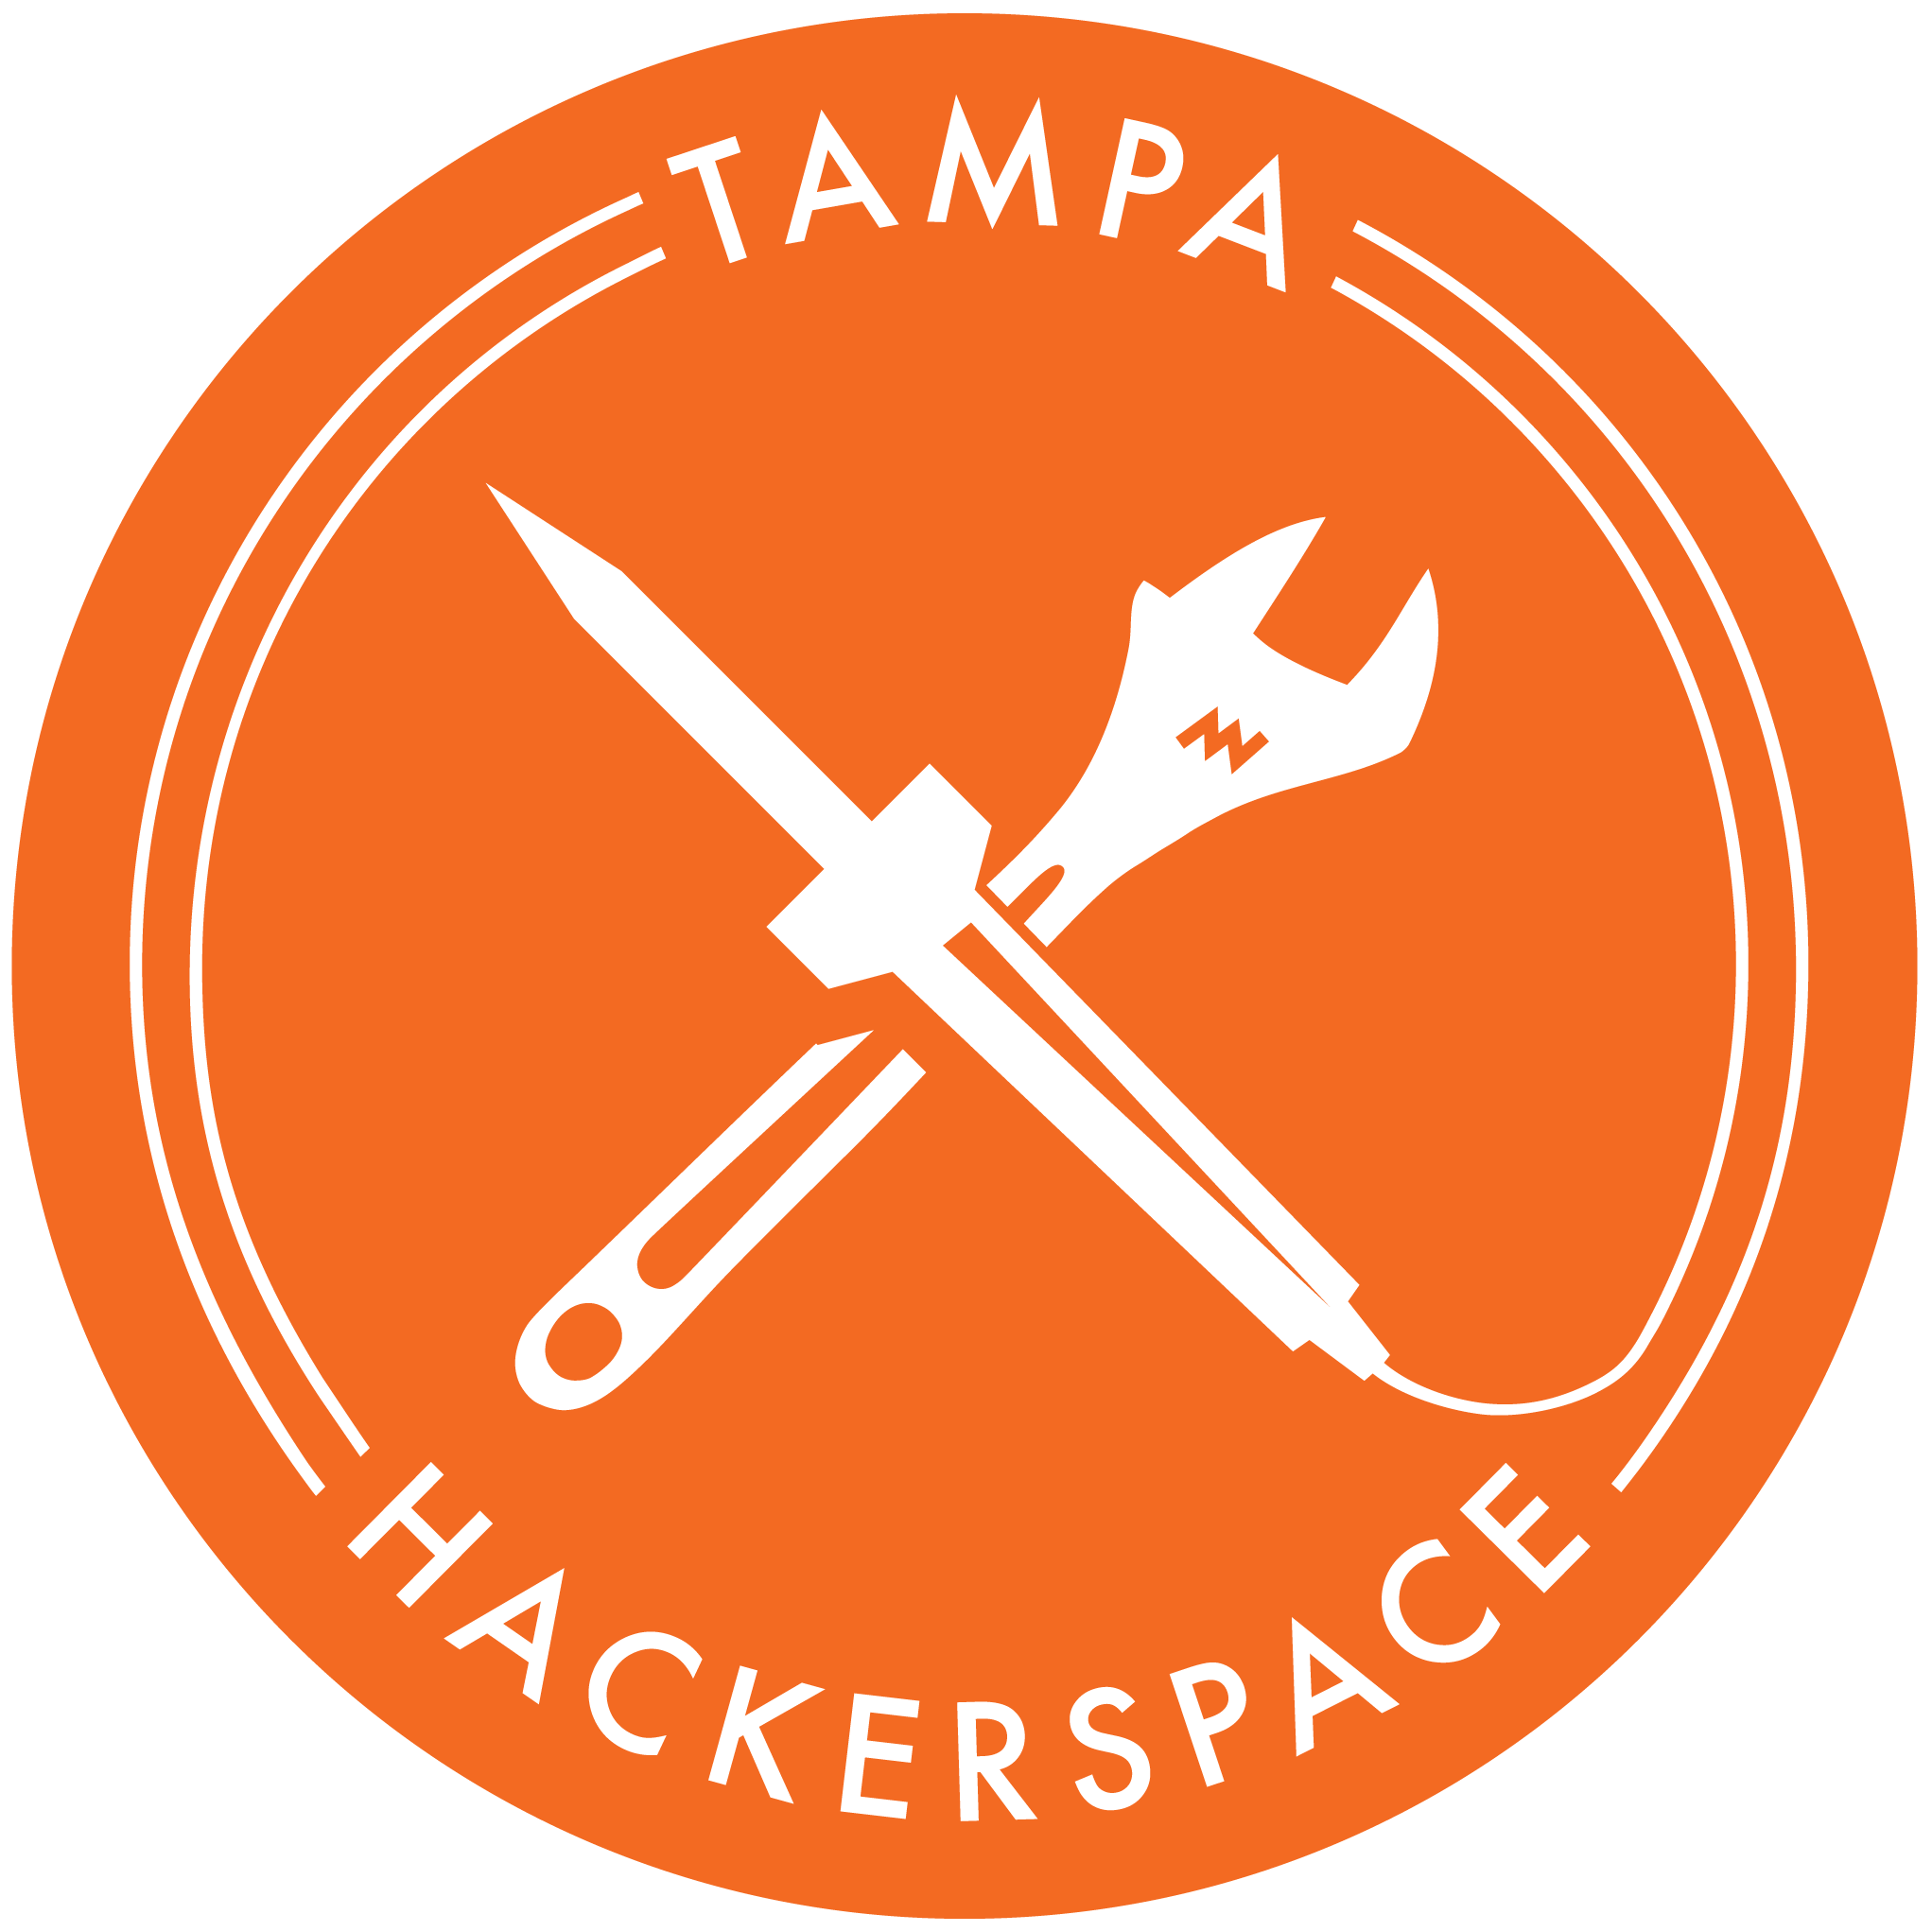 File:Tampa-Hackerspace-2048-Transparent-border.png